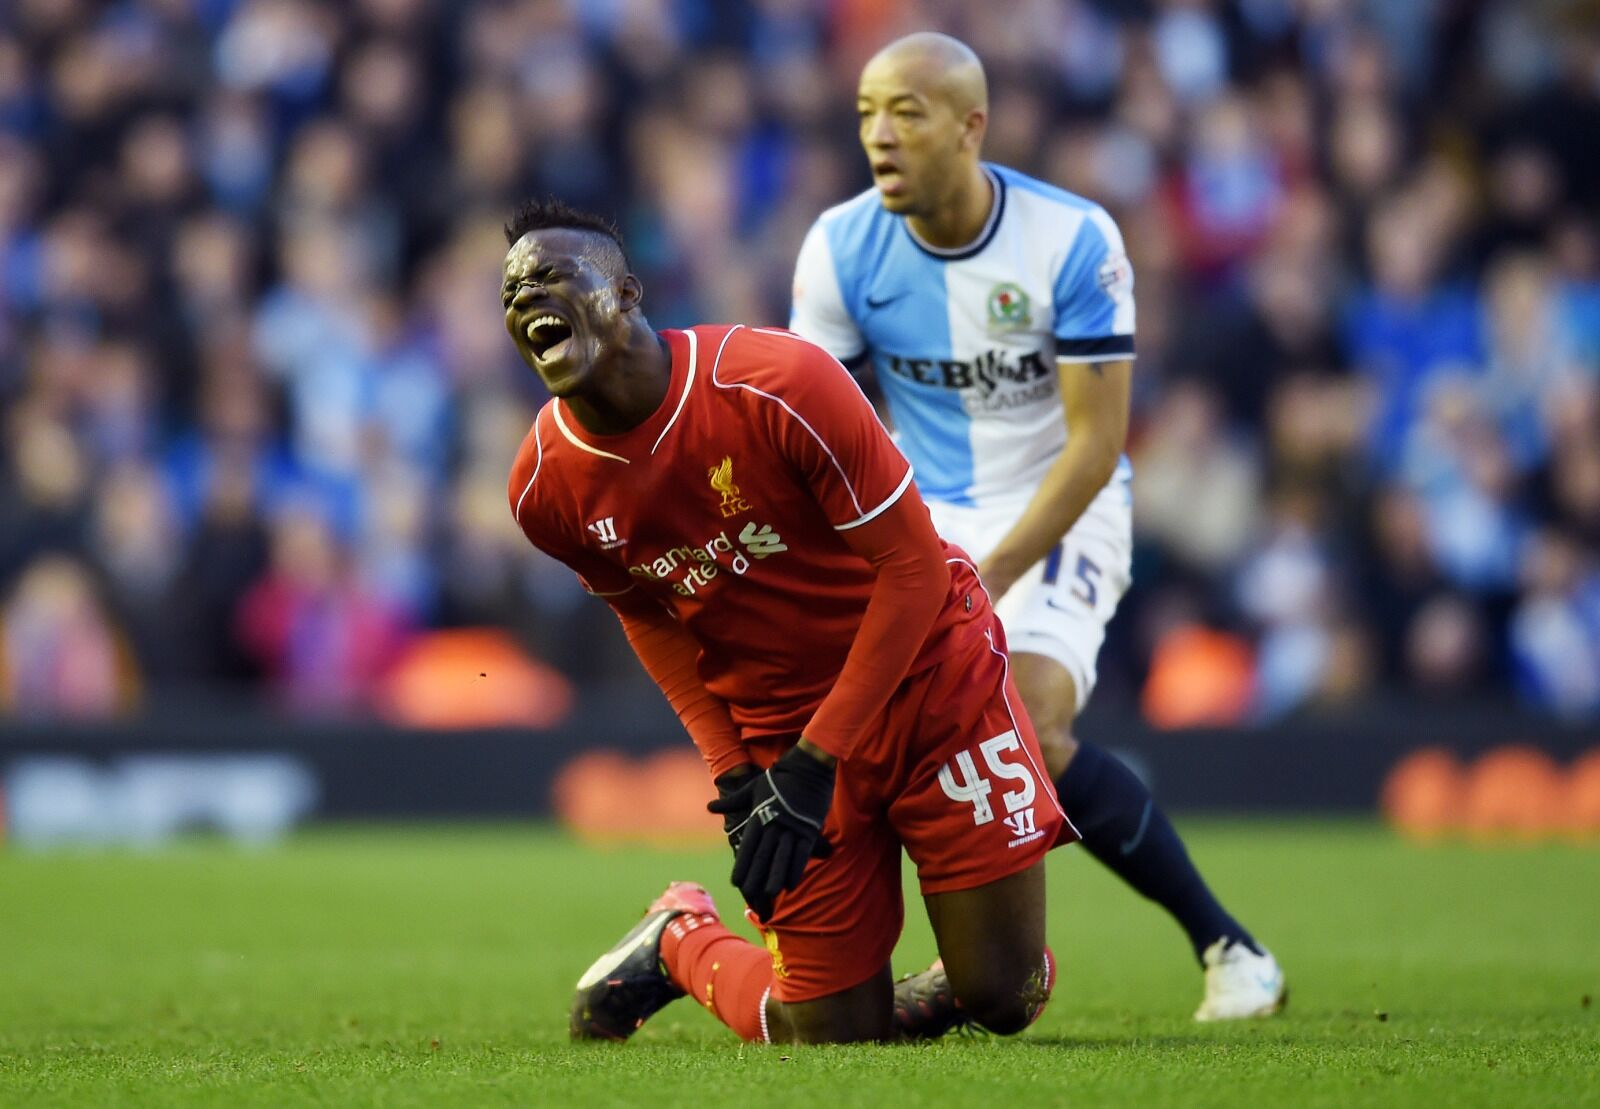 Rodgers wanted Remy and Eto'o but got disaster Balotelli